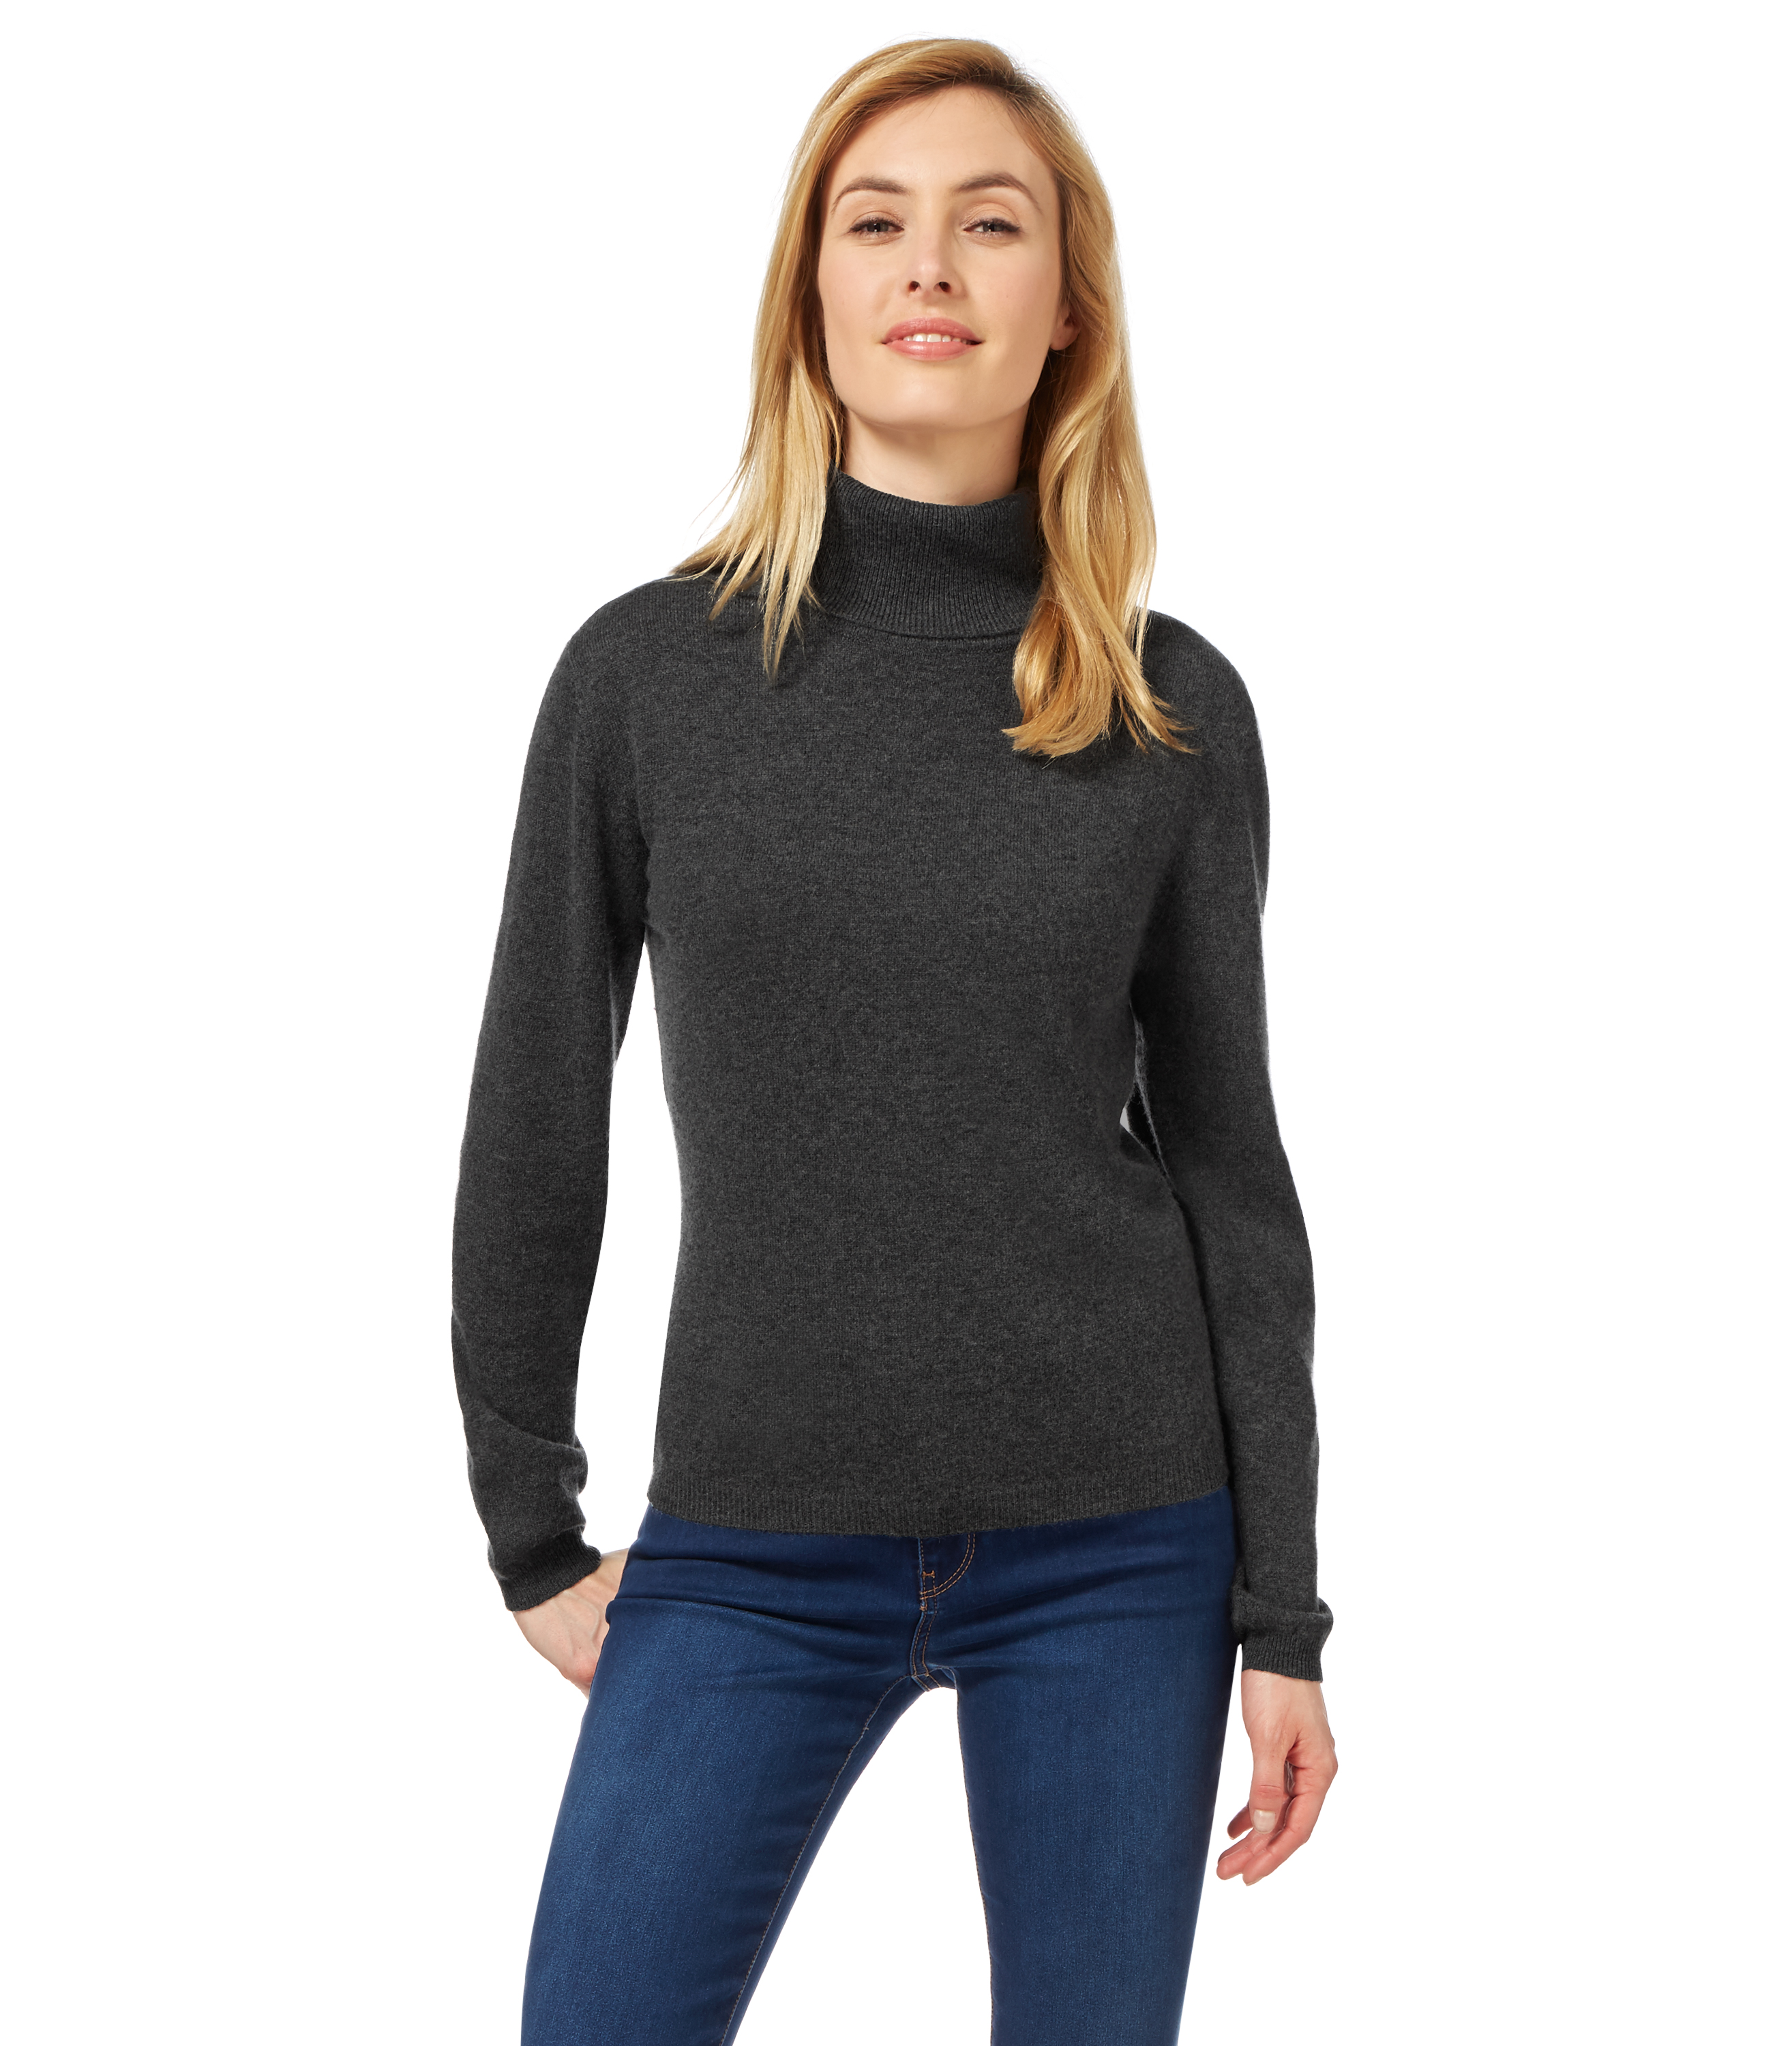 Stay warm on chilly days with our women's roll-neck knitwear. Nestle into turtlenecks, turn-back styles or softly draped cowls in neutral hues to .